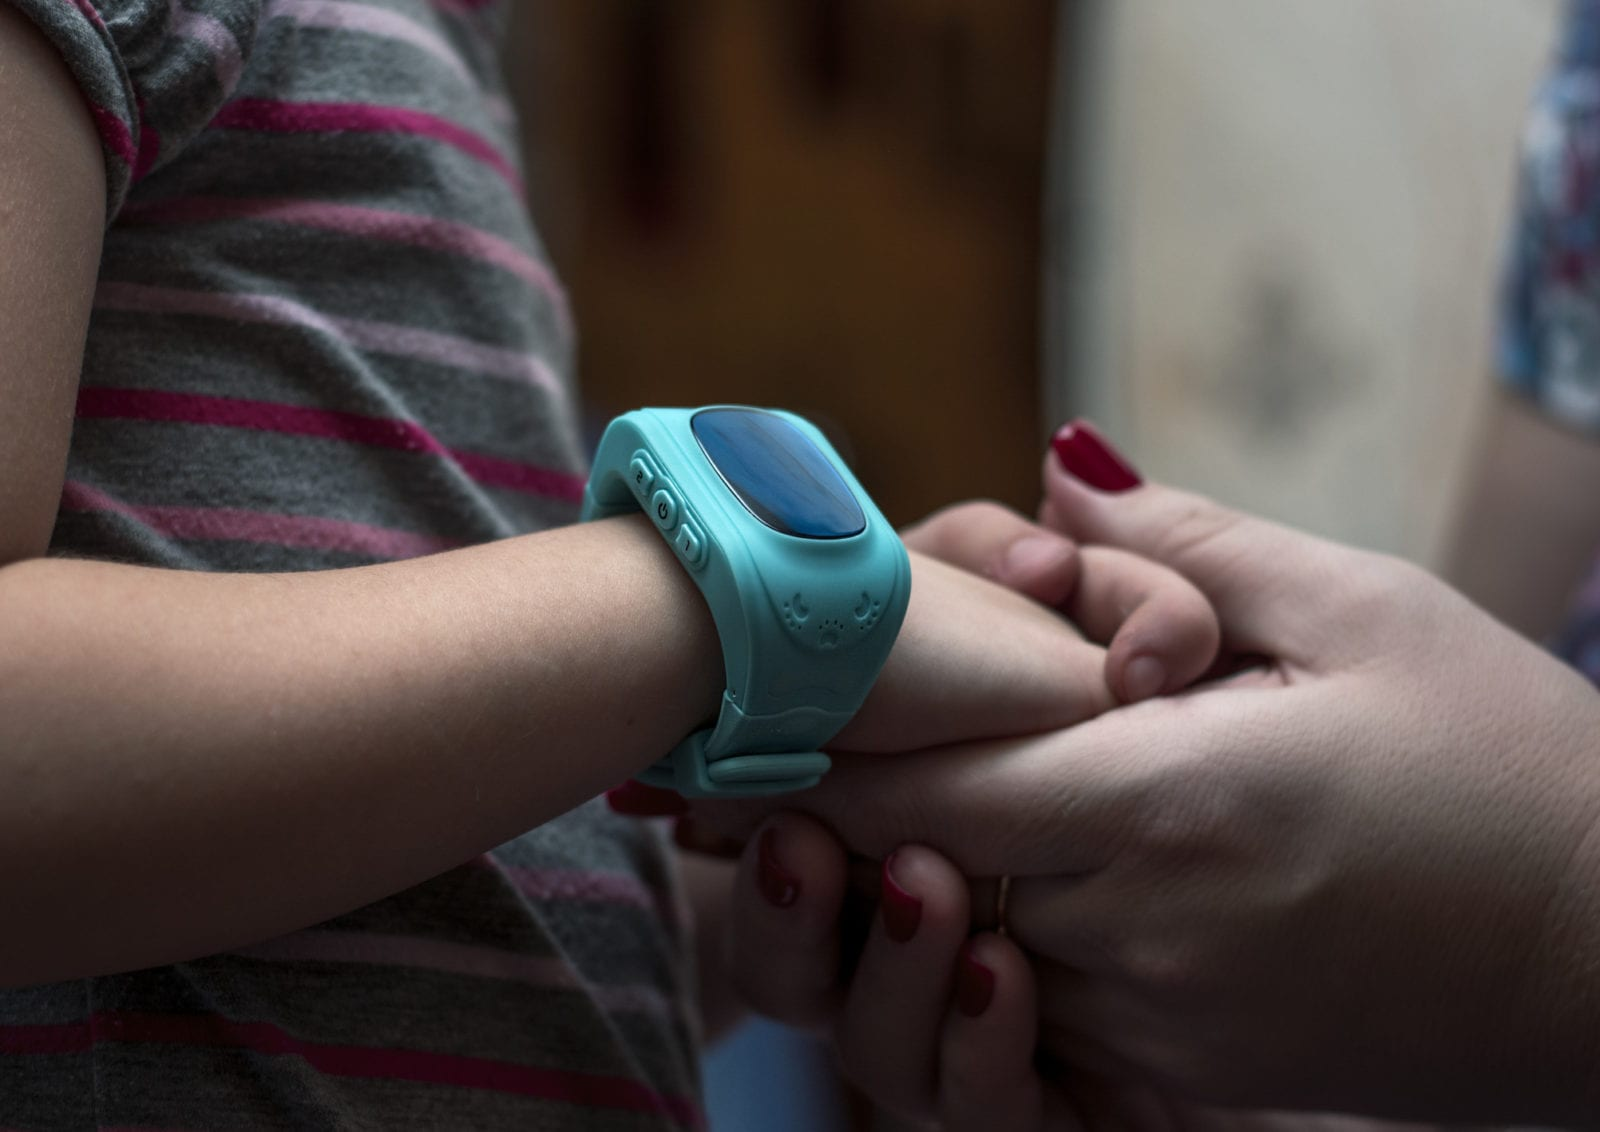 smartwatches for kids: parent holding a child's hand